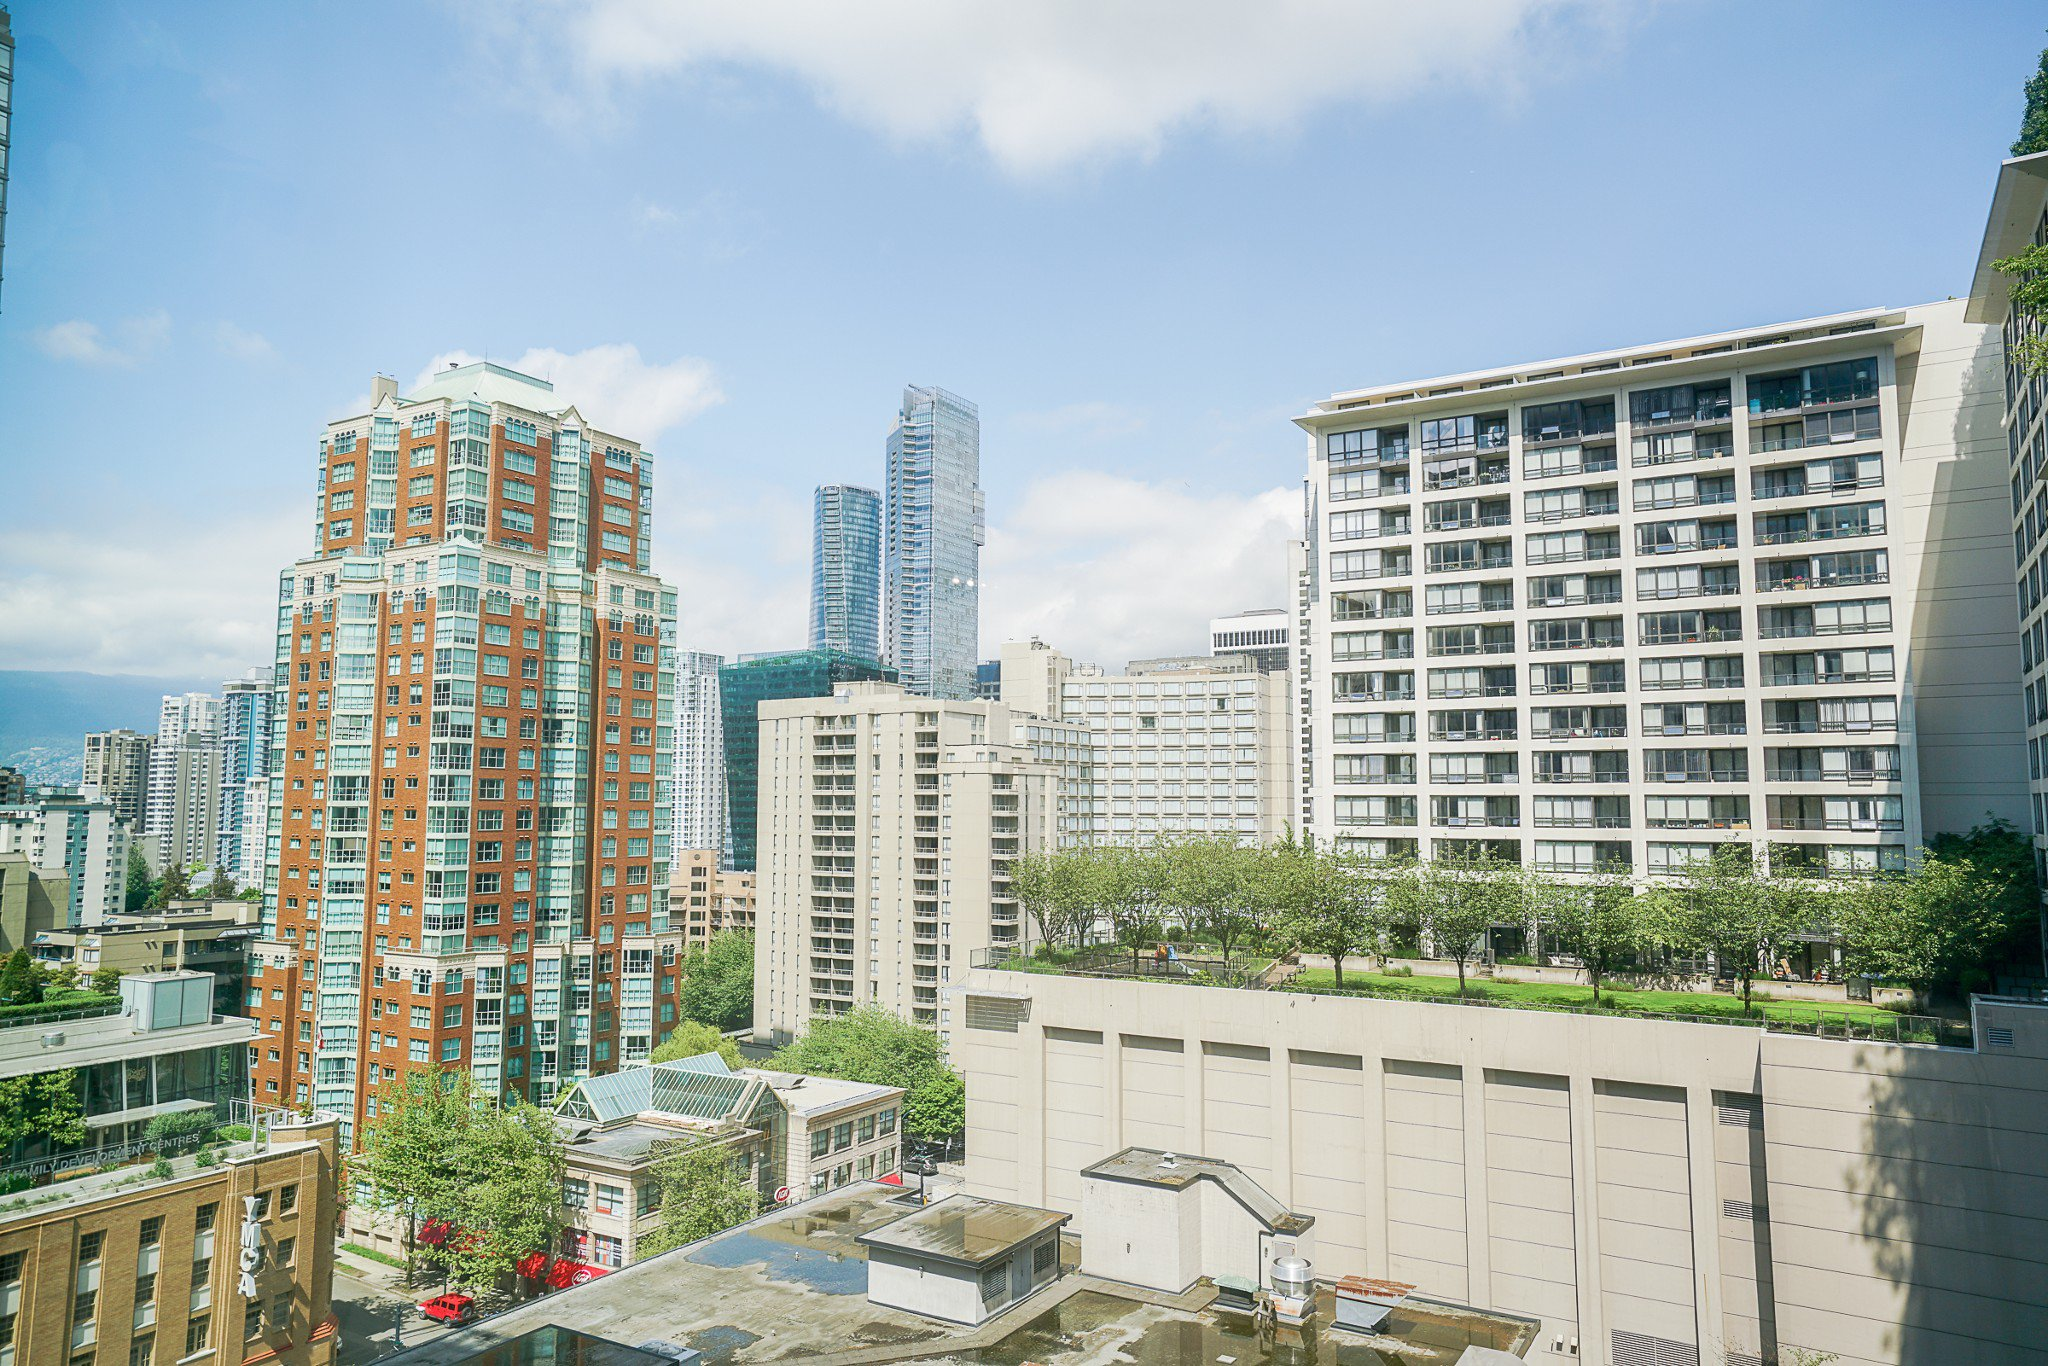 """Main Photo: 913 989 NELSON Street in Vancouver: Downtown VW Condo for sale in """"THE ELECTRA"""" (Vancouver West)  : MLS®# R2457107"""